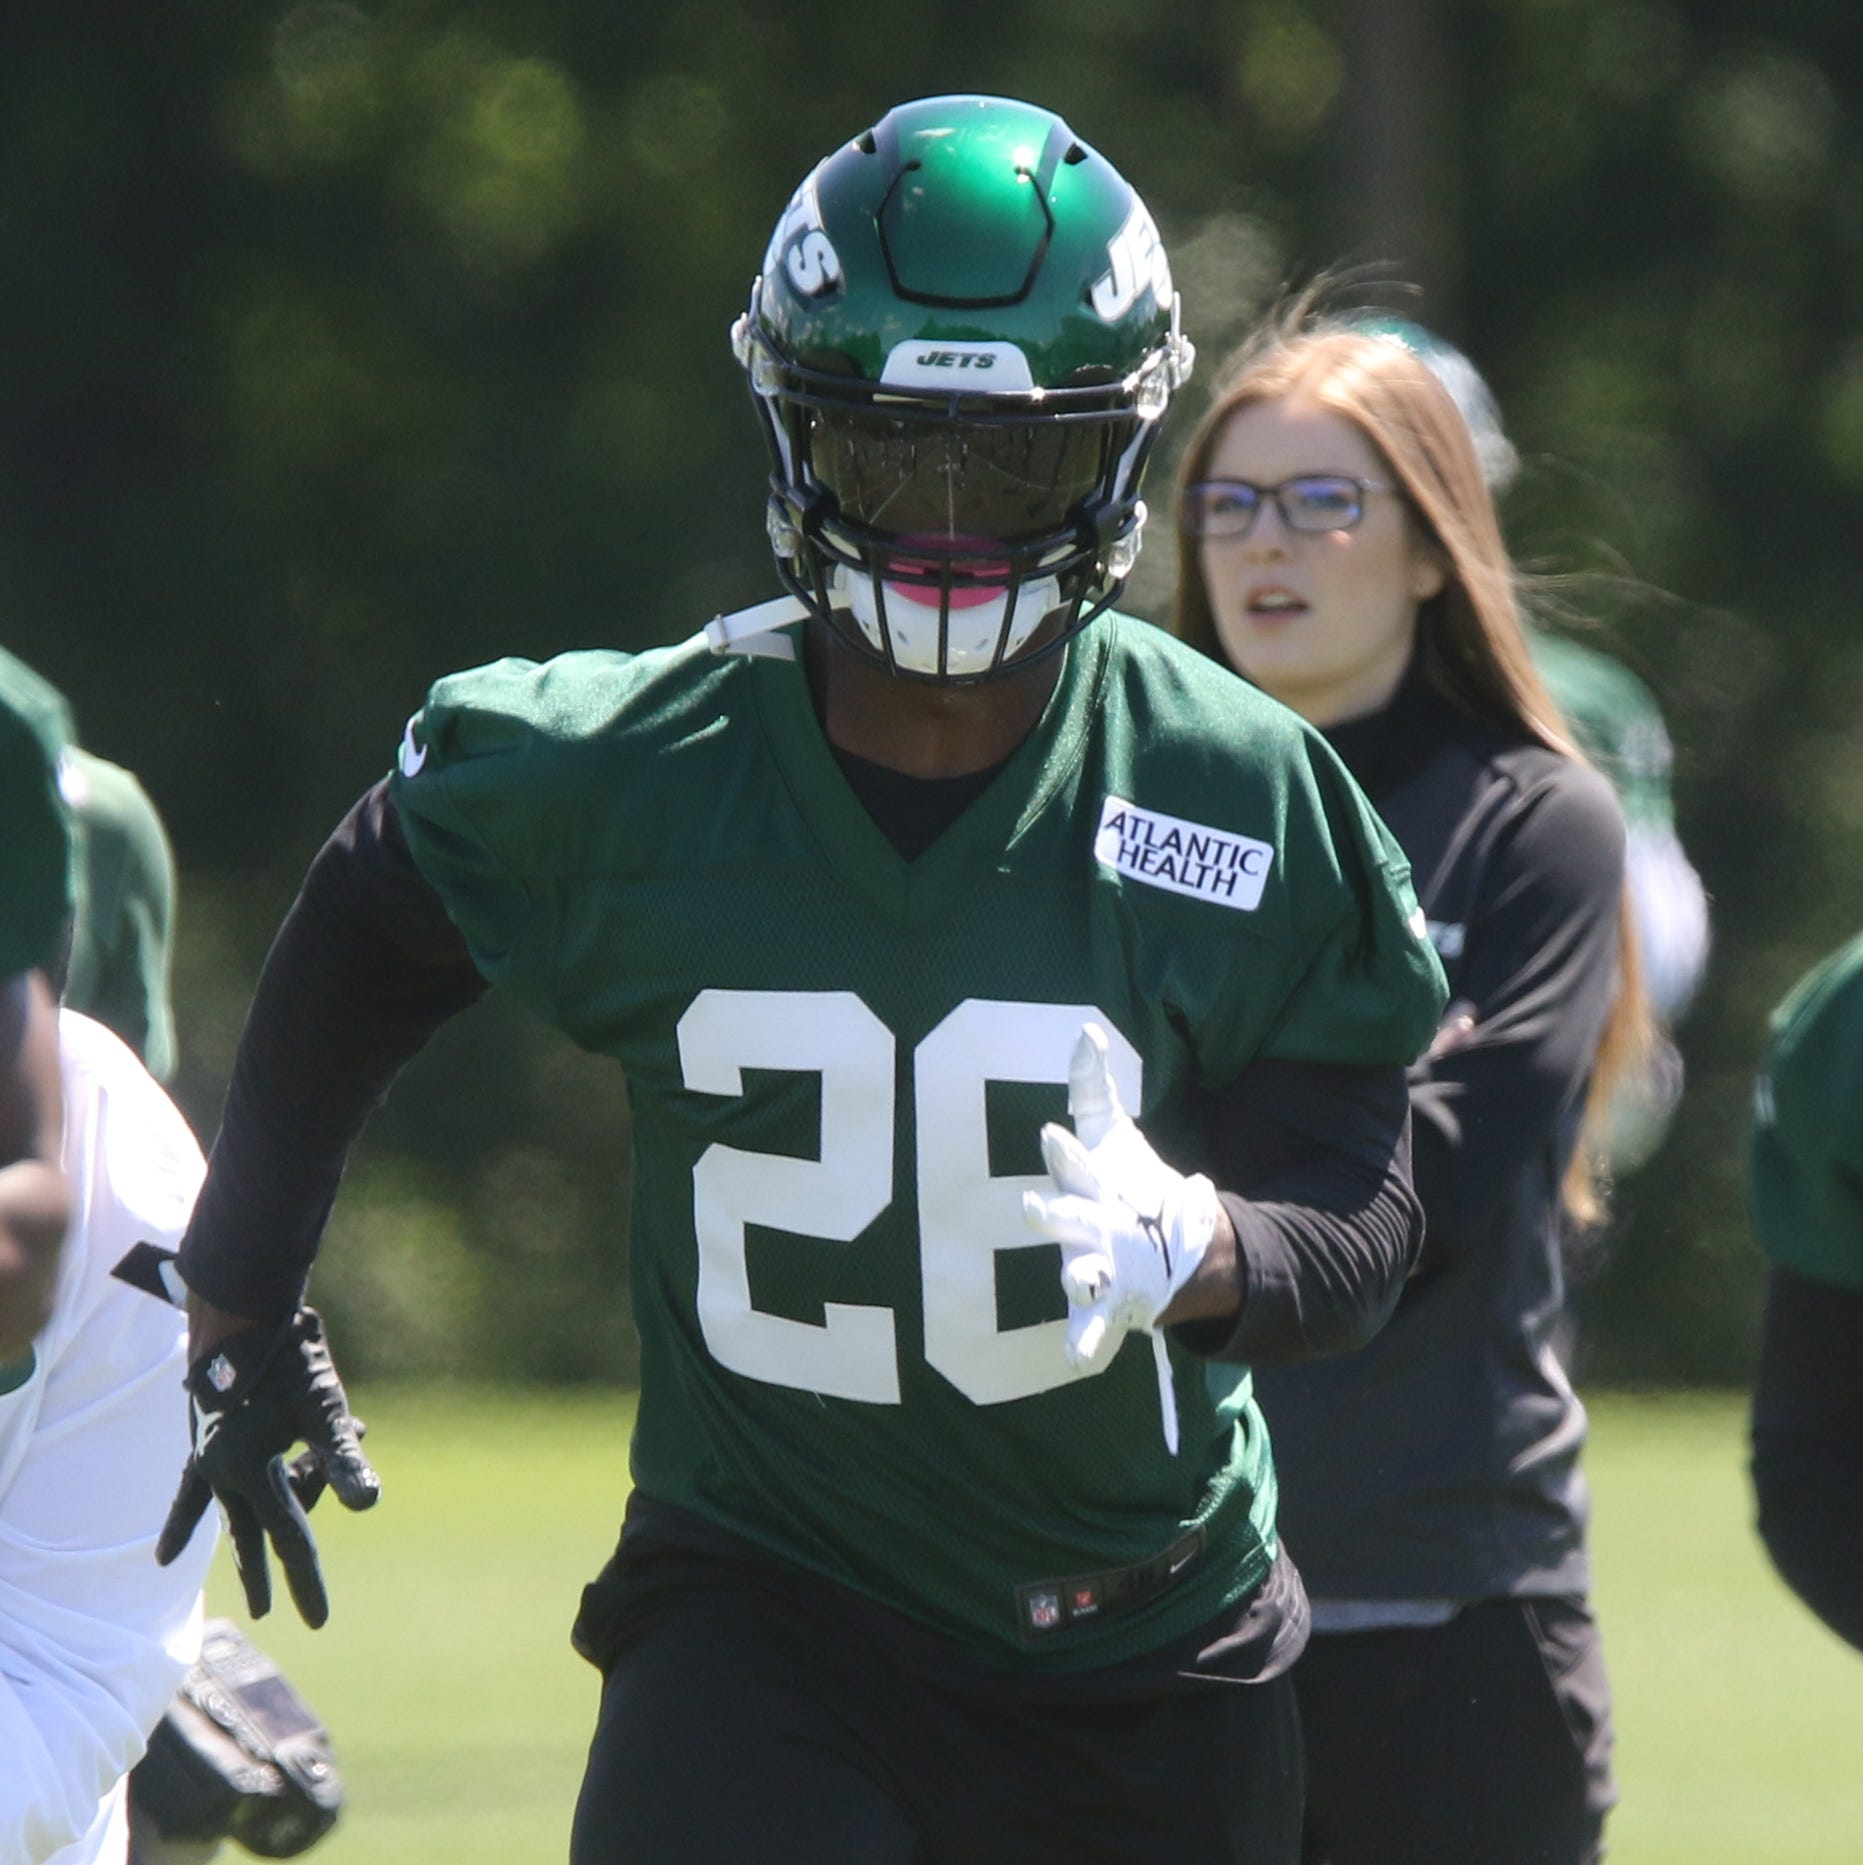 How Jets' Le'Veon Bell impressed coach Adam Gase during mandatory minicamp